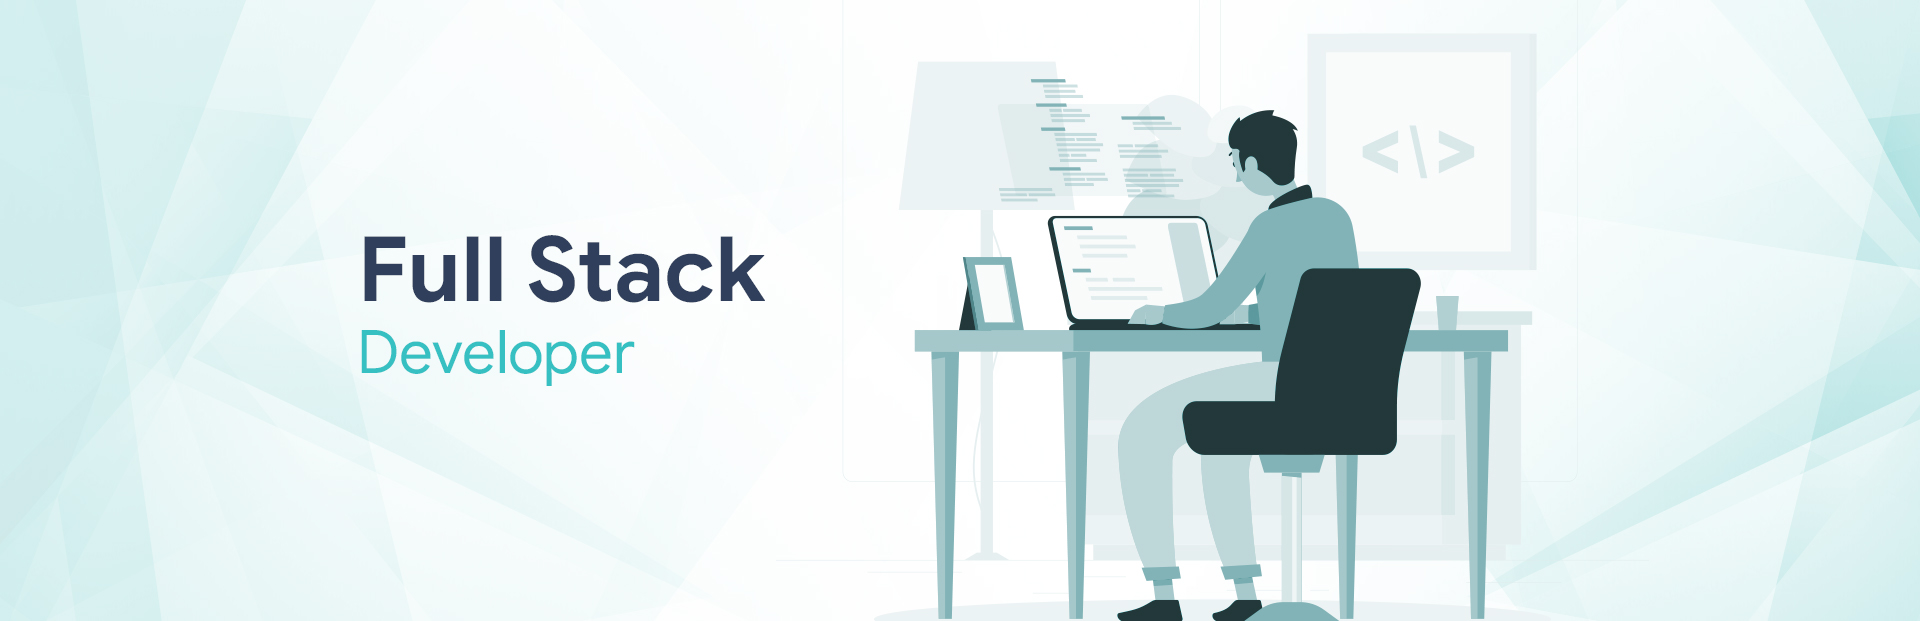 Need of a full stack developer in a project, need to know